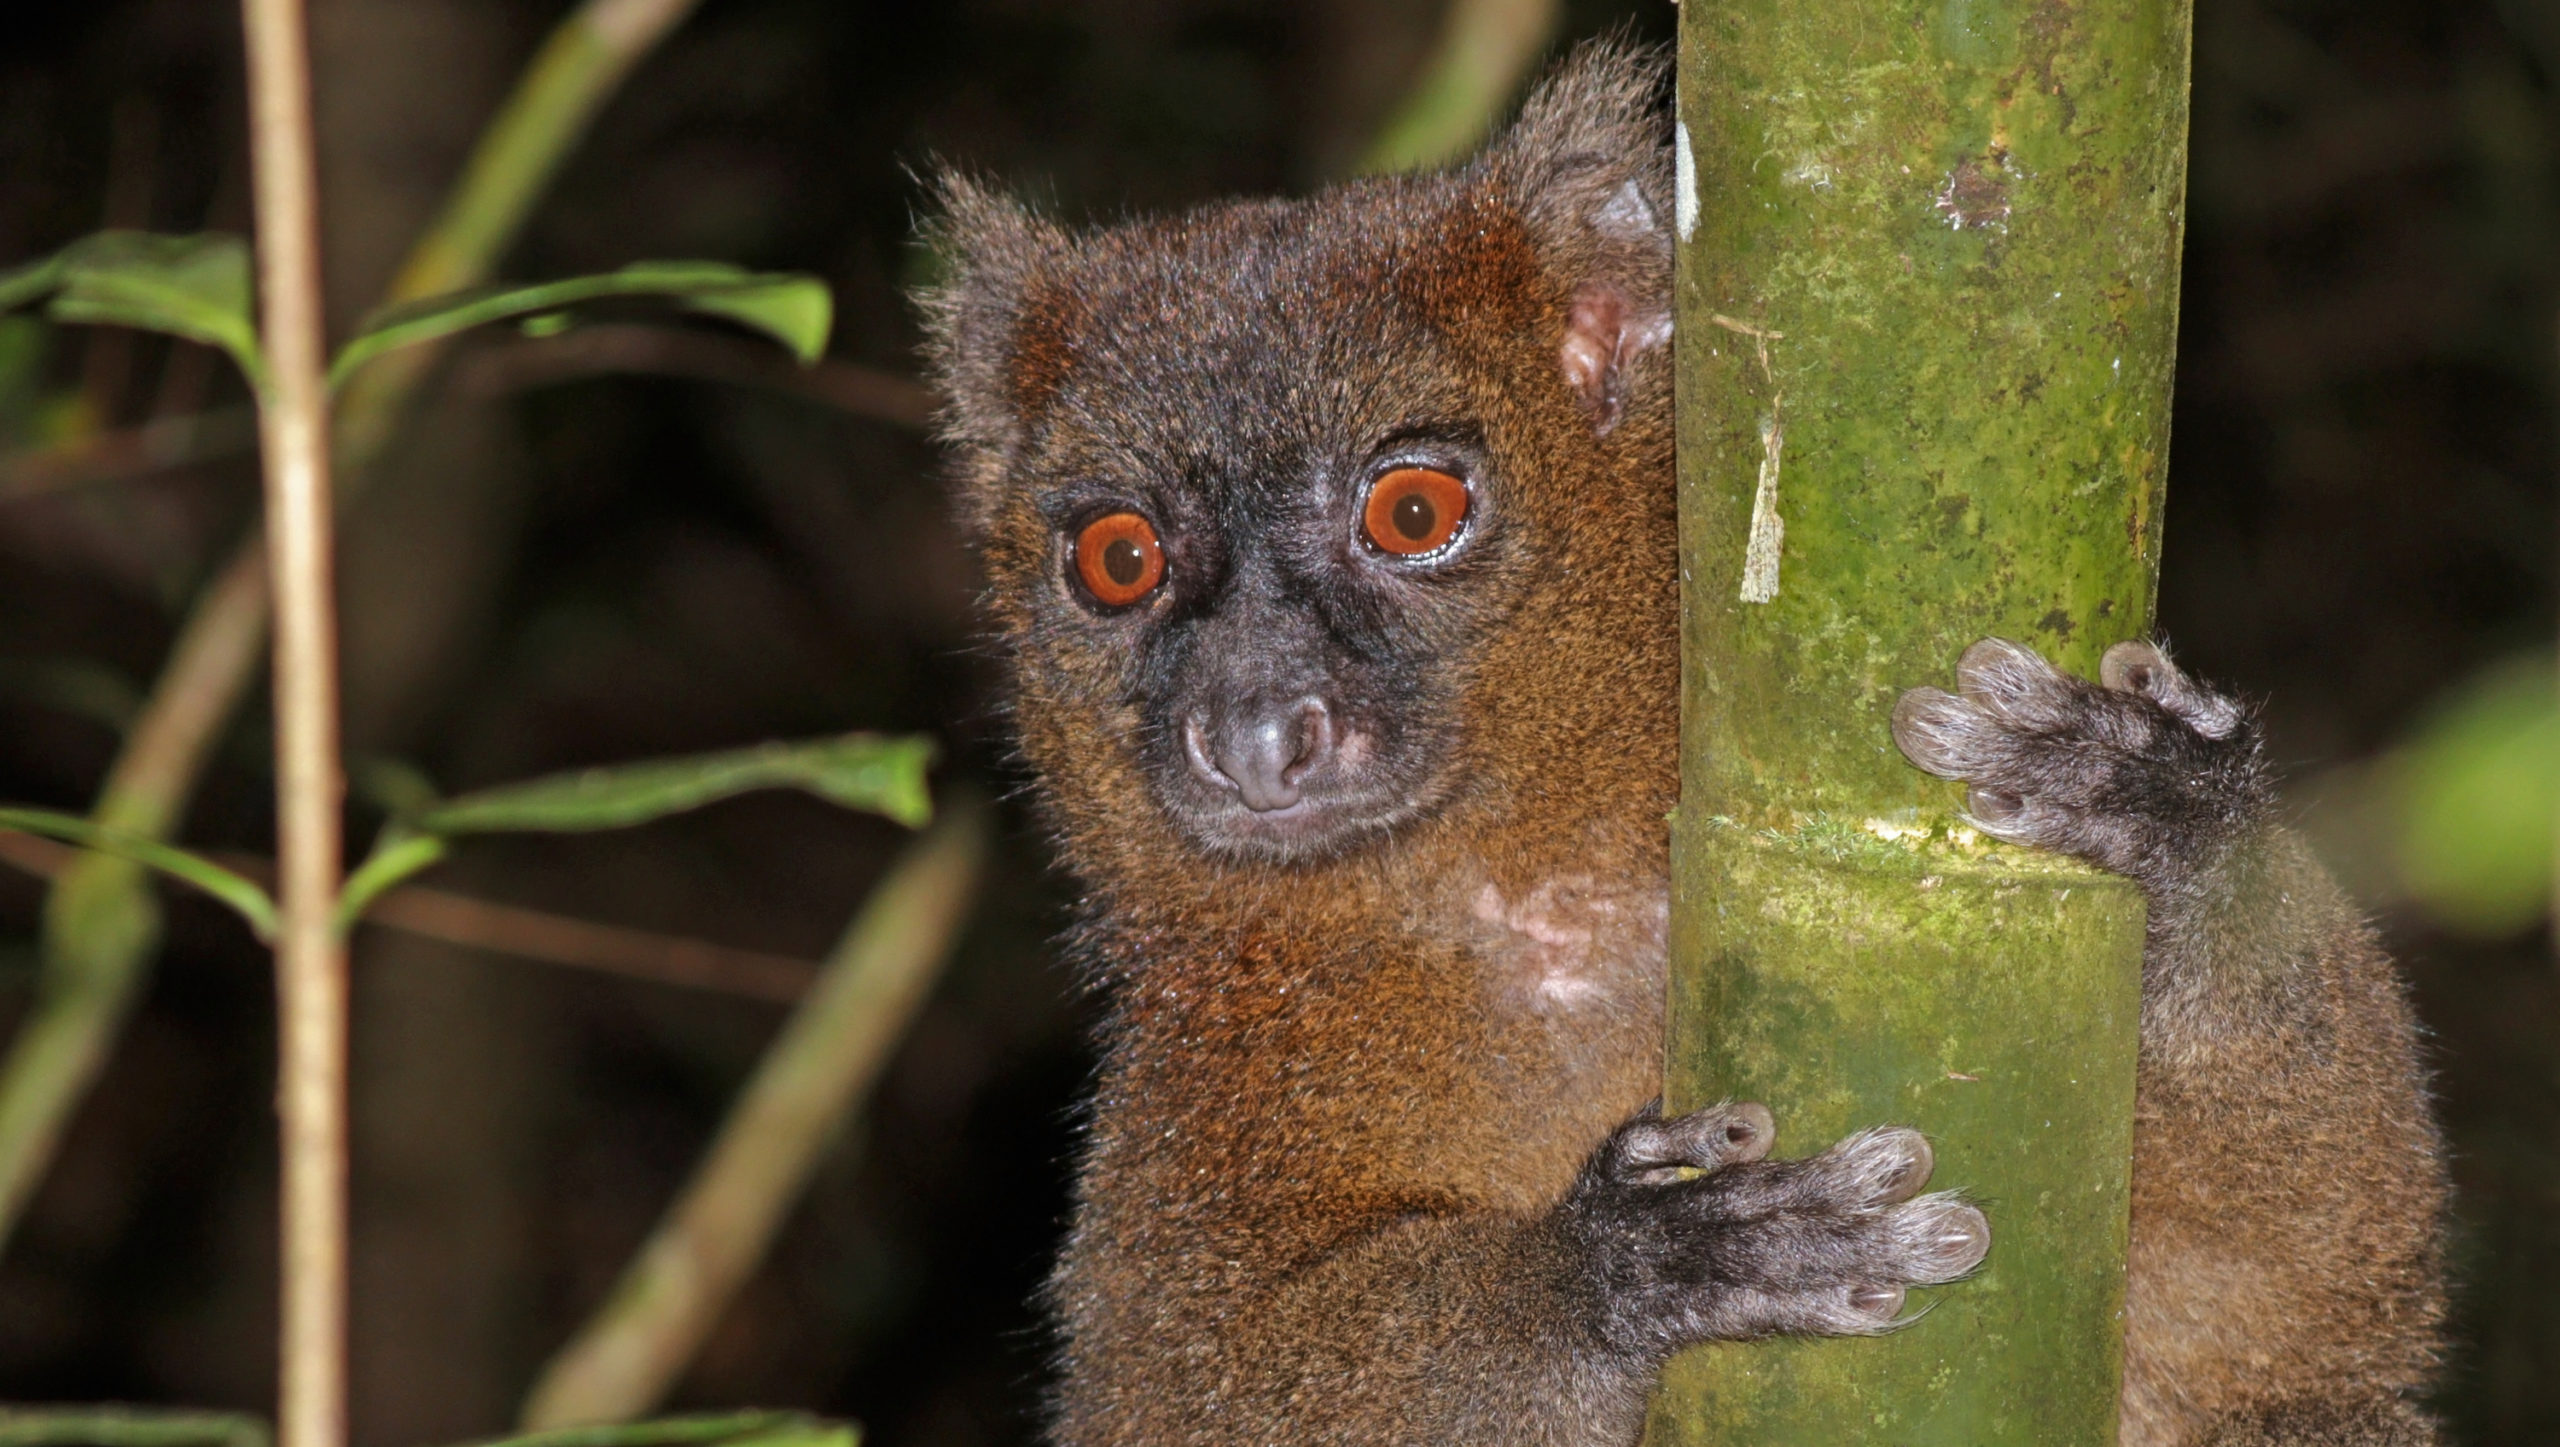 Slash-and-burn farming eats away at a Madagascar haven for endangered lemurs, frogs